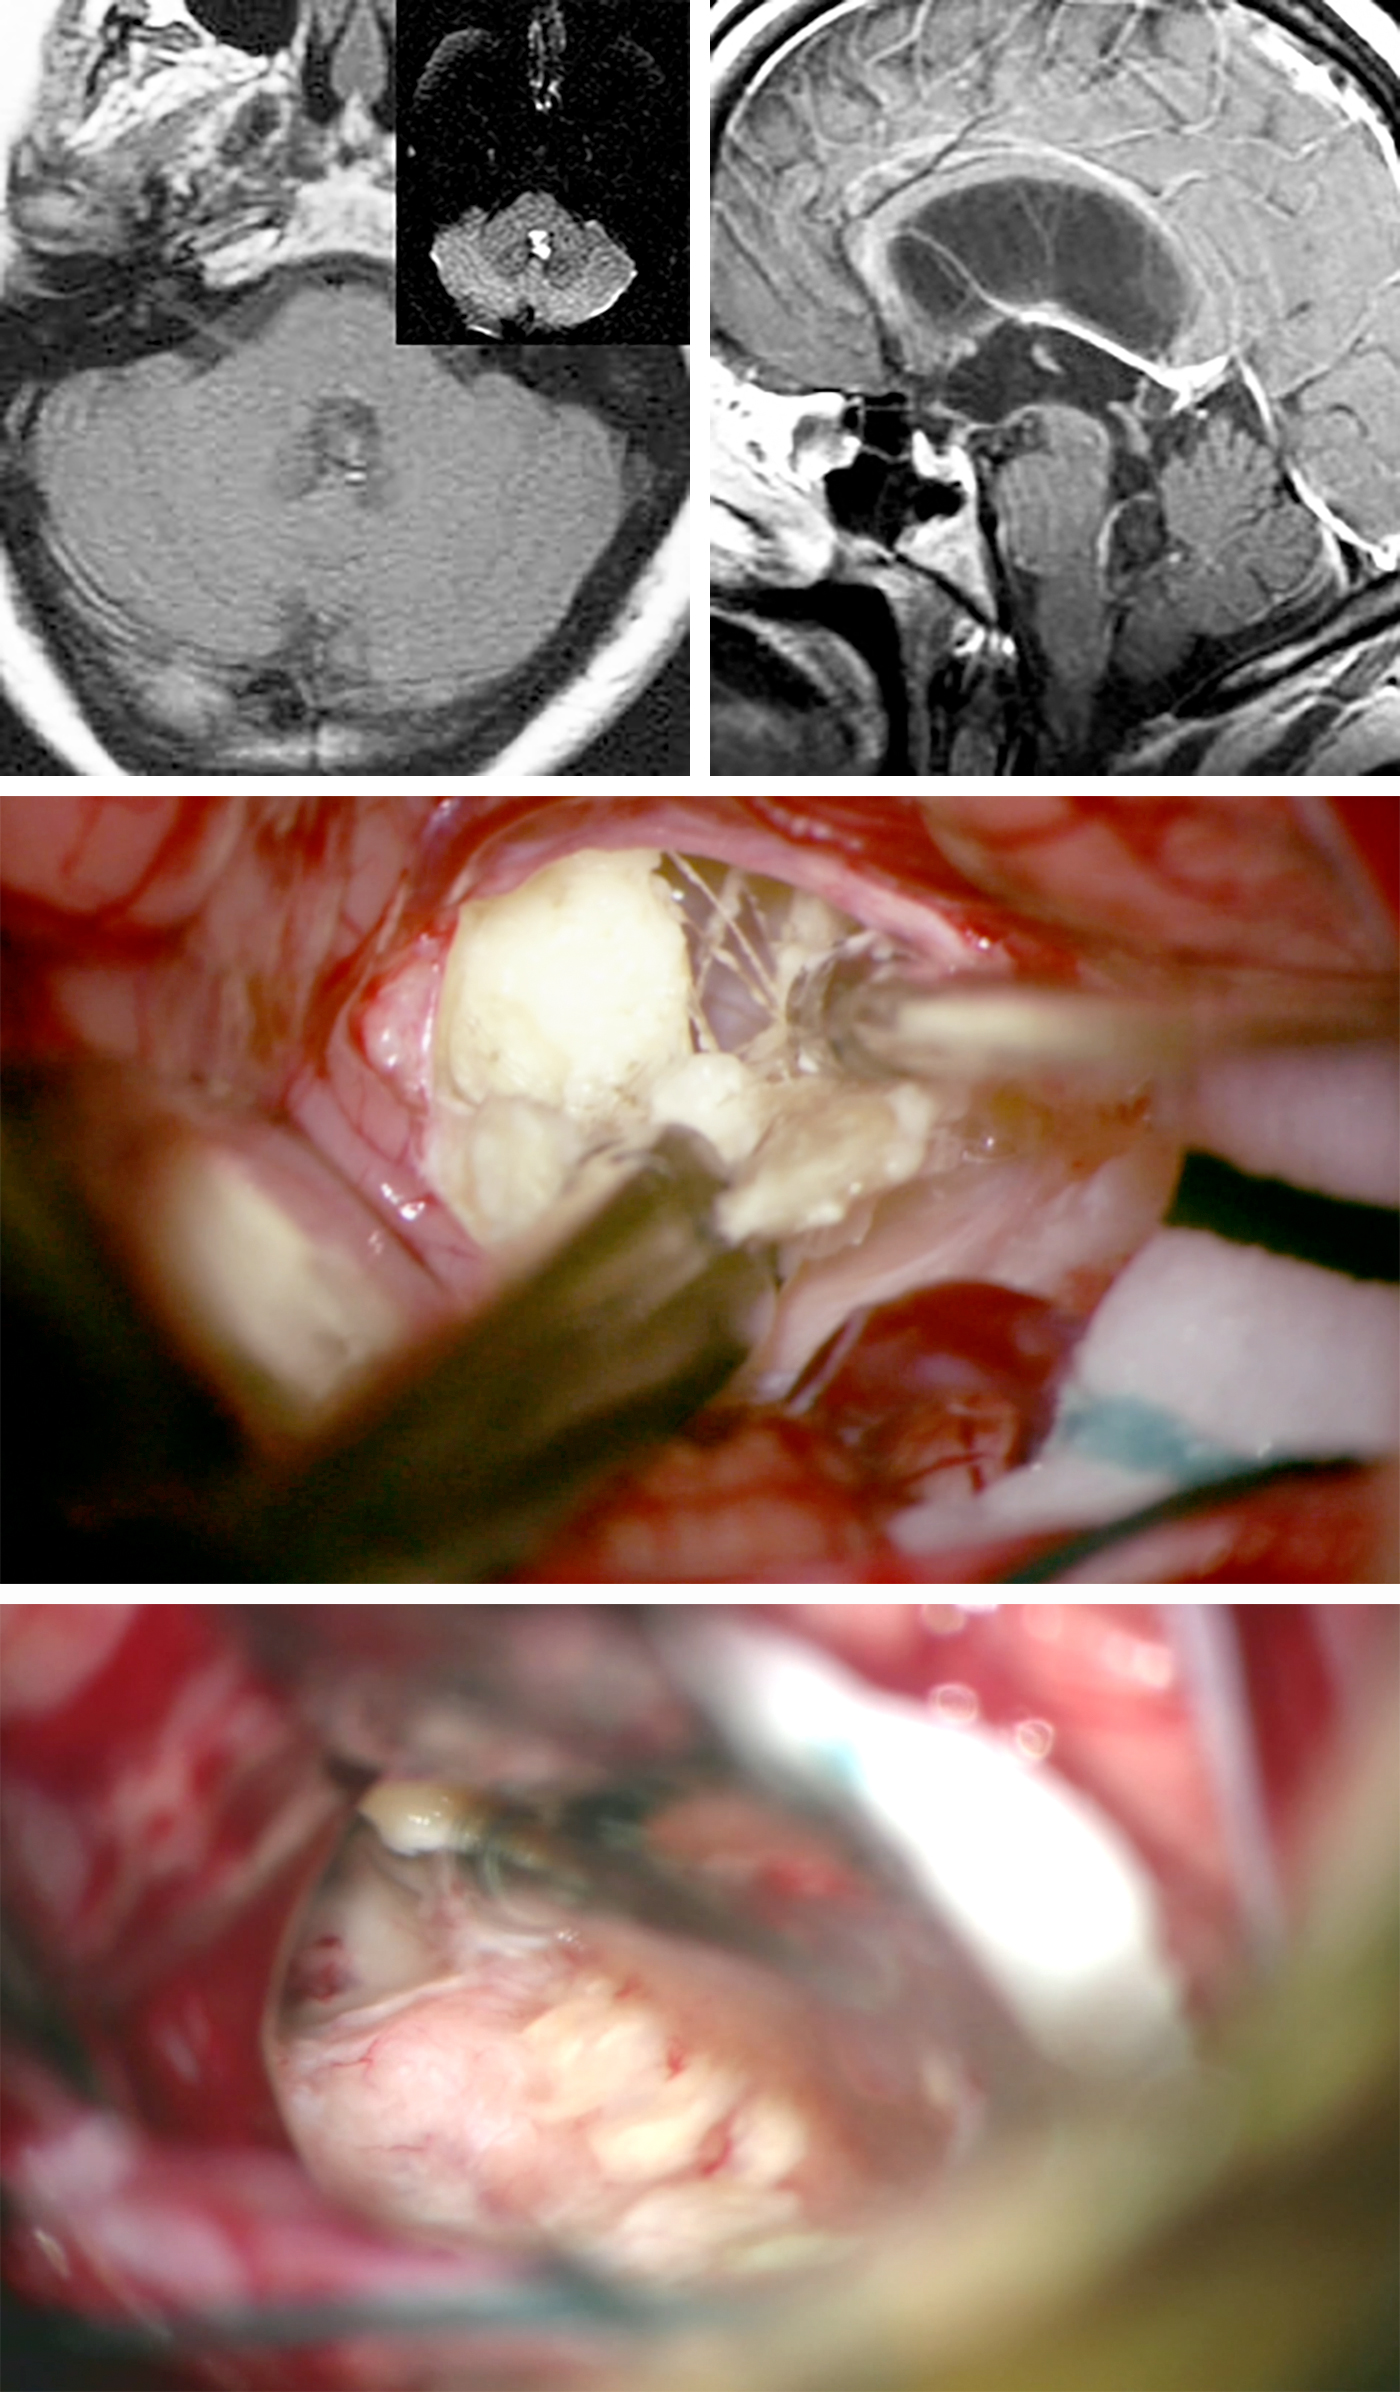 Figure 14: A fourth ventricular dermoid tumor in a patient with intractable headaches and mild hydrocephalus is shown. Note the subtle punctate T1 hyperdensities within the lesion, characteristic of fat droplets (top images). The lesion was accessed via the telovelar approach. The tumor contained hair (middle photo). Upon complete removal of the contents of the lesion's capsule, the aqueduct was visible (bottom photo).